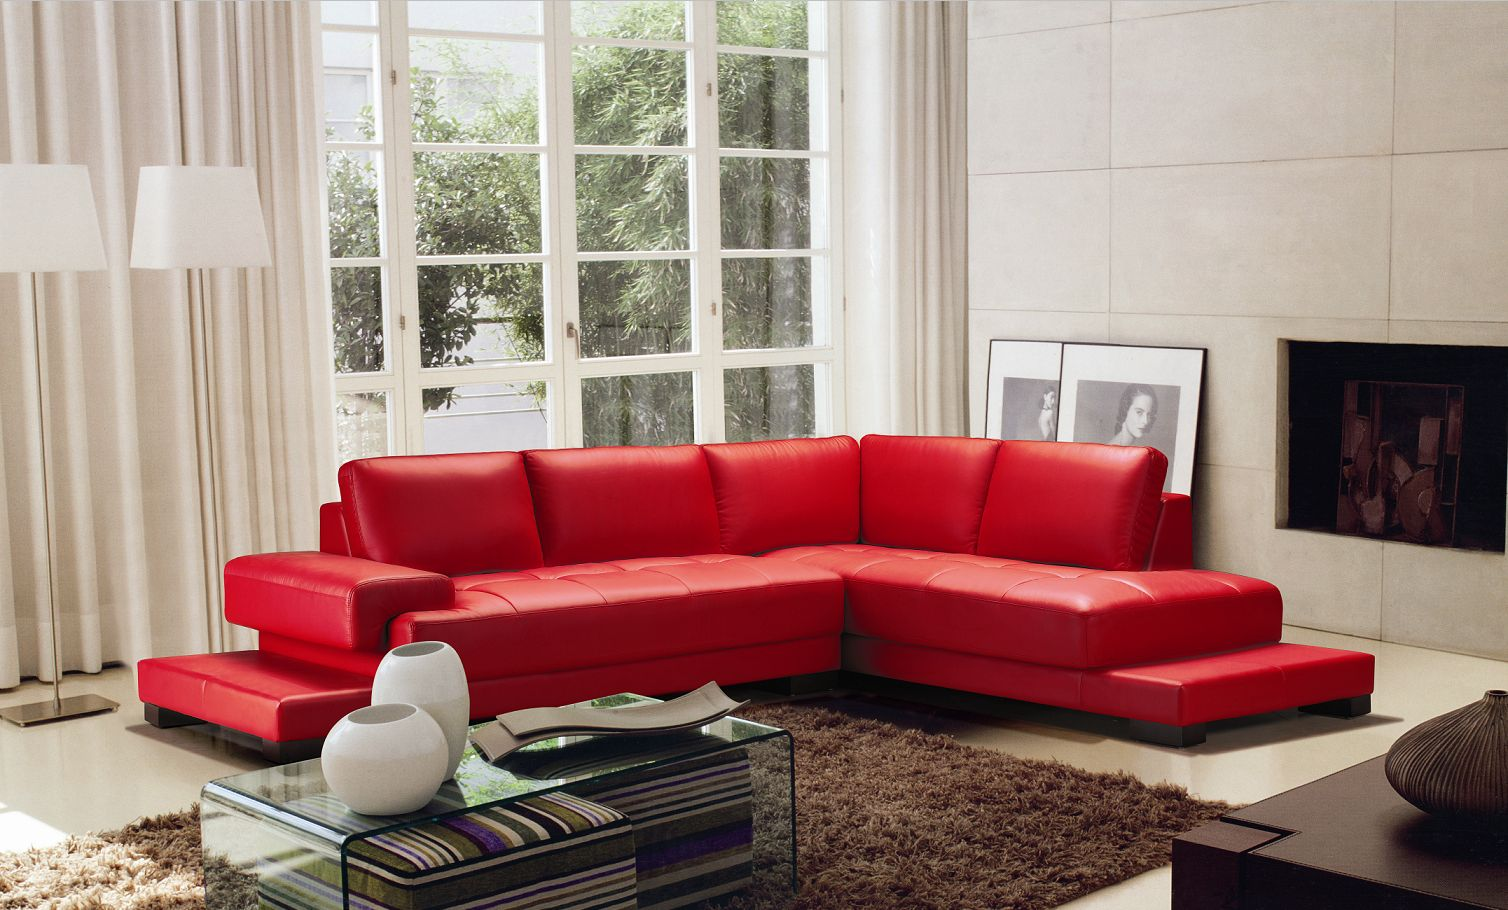 Culture editor, buzzfeed uk generally speaking: 2226 Red Sofa Set | Black Design Co